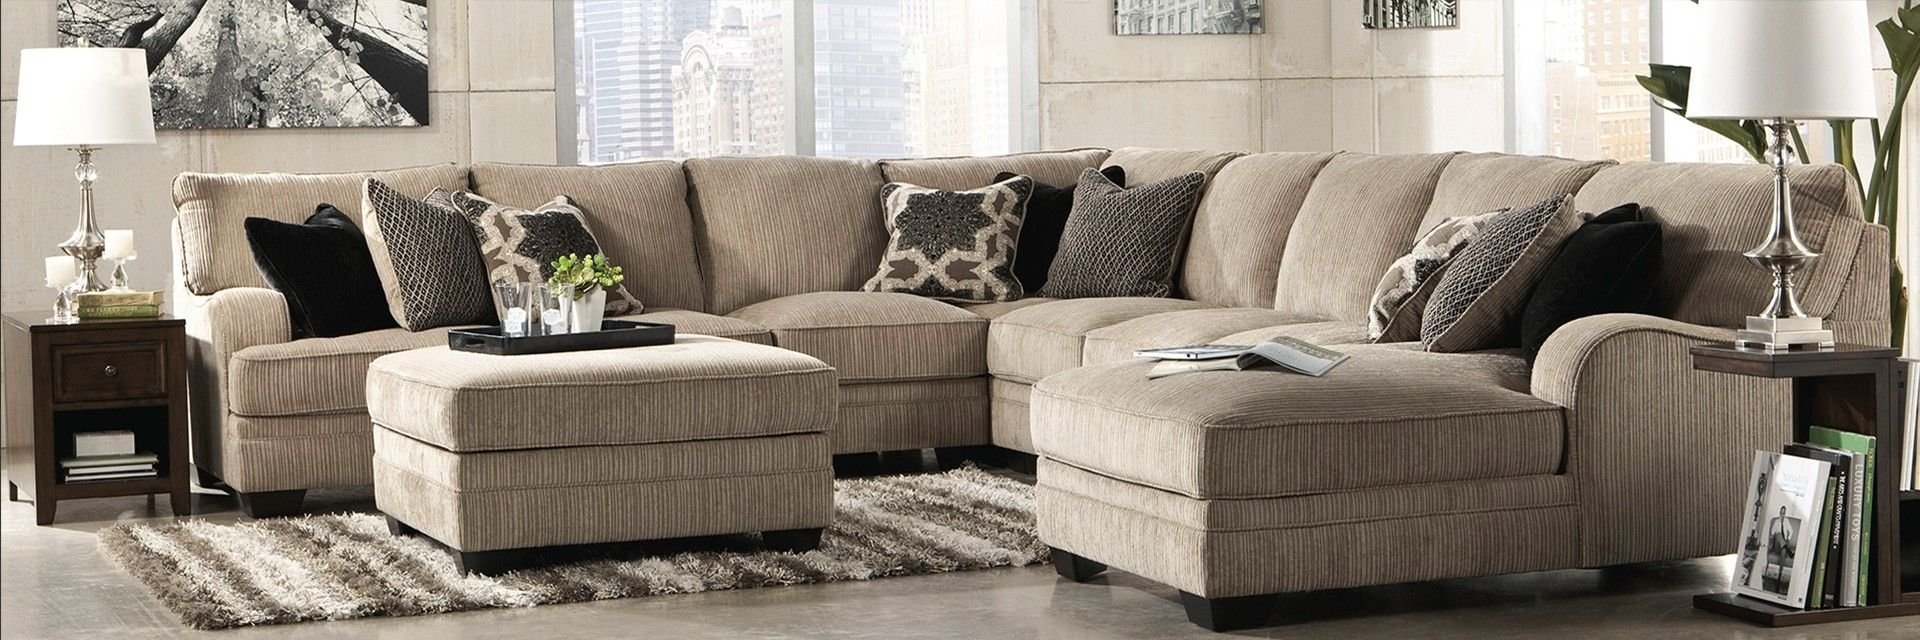 Cheap Living Room Furniture Stores home design in Pinterest